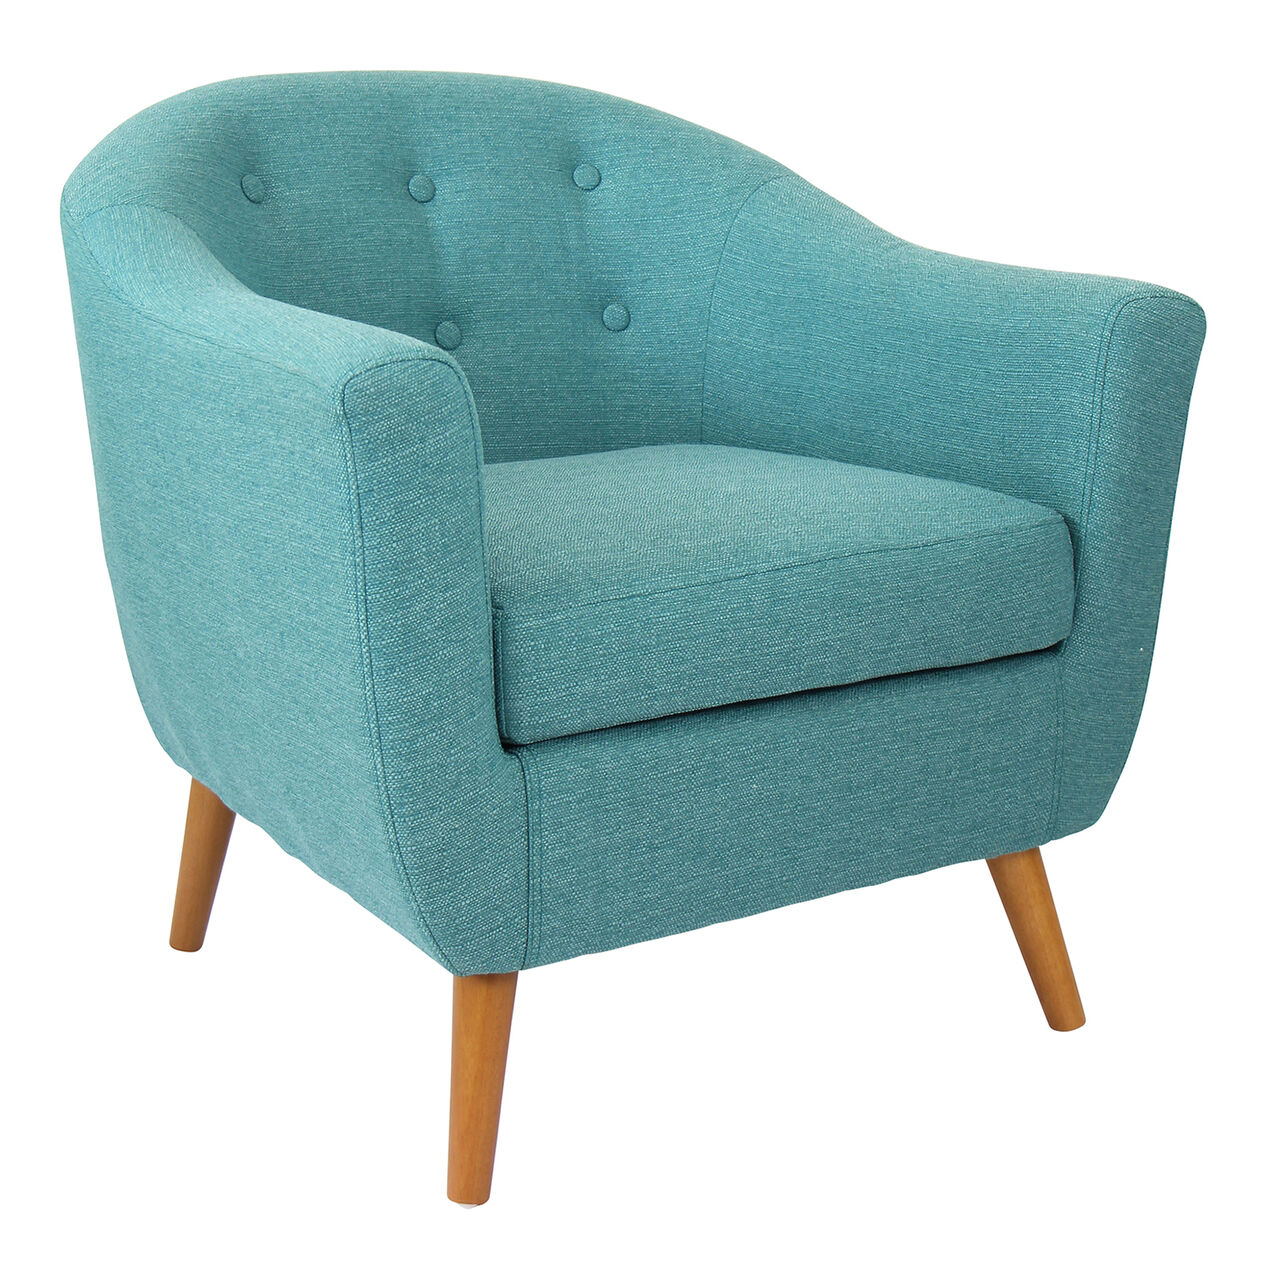 Rockwell accent chair teal at home for Occasional seating